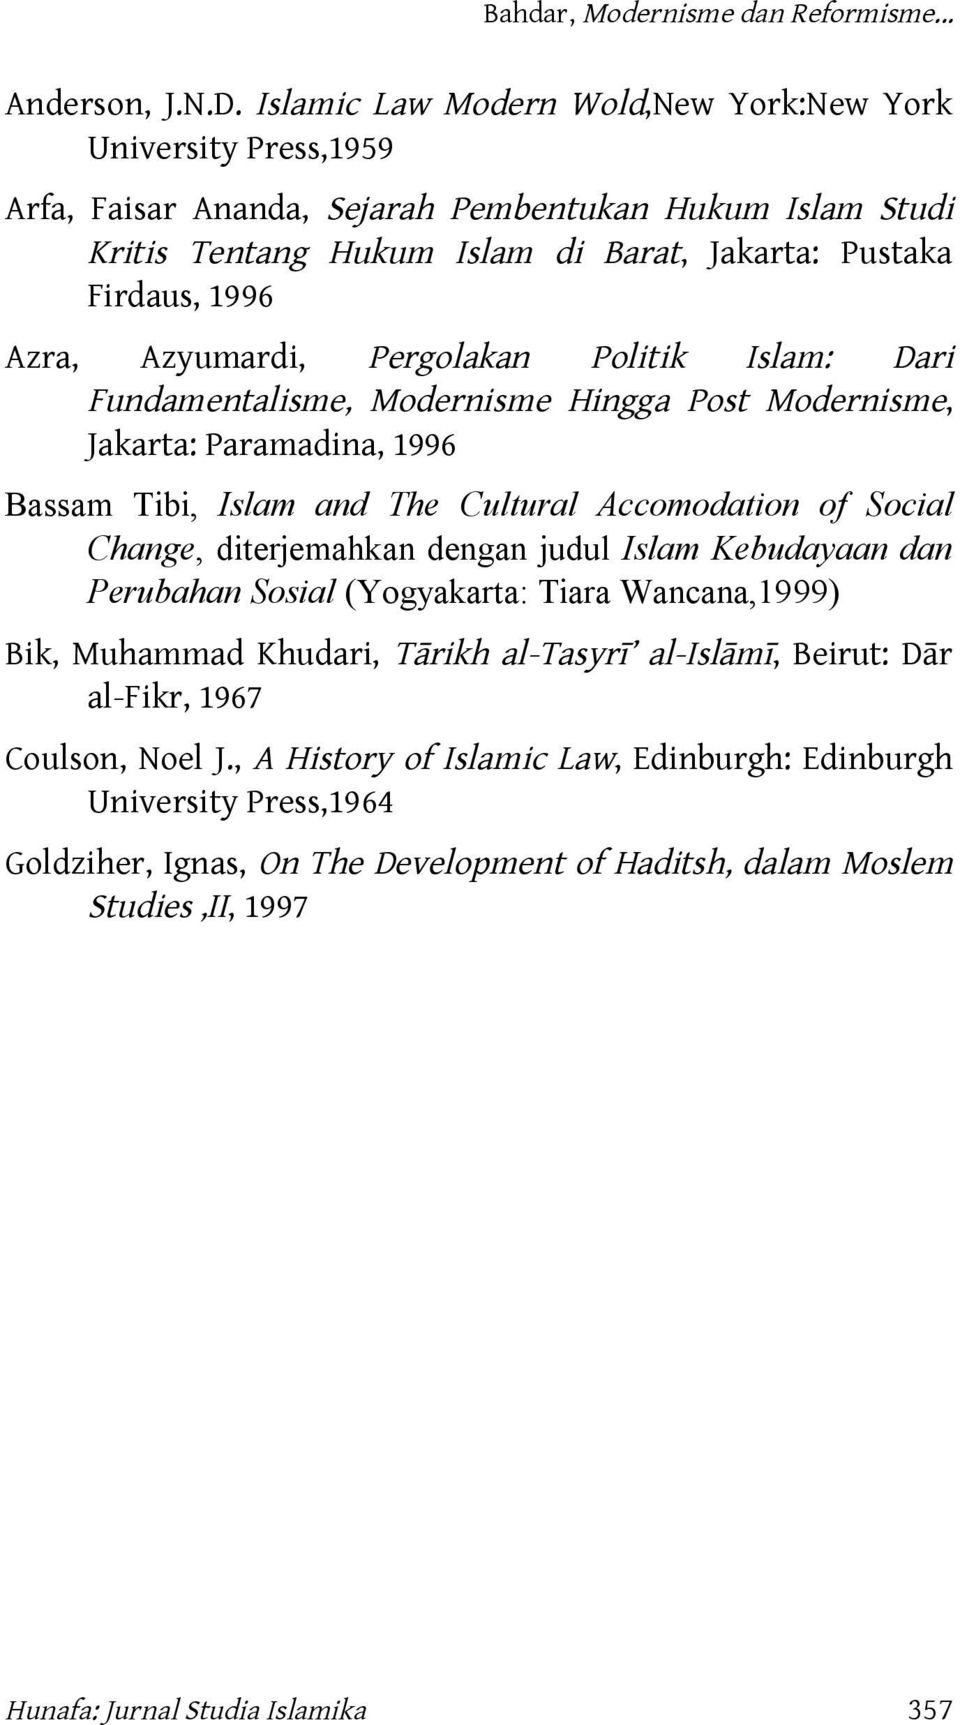 Azyumardi, Pergolakan Politik Islam: Dari Fundamentalisme, Modernisme Hingga Post Modernisme, Jakarta: Paramadina, 1996 Bassam Tibi, Islam and The Cultural Accomodation of Social Change,